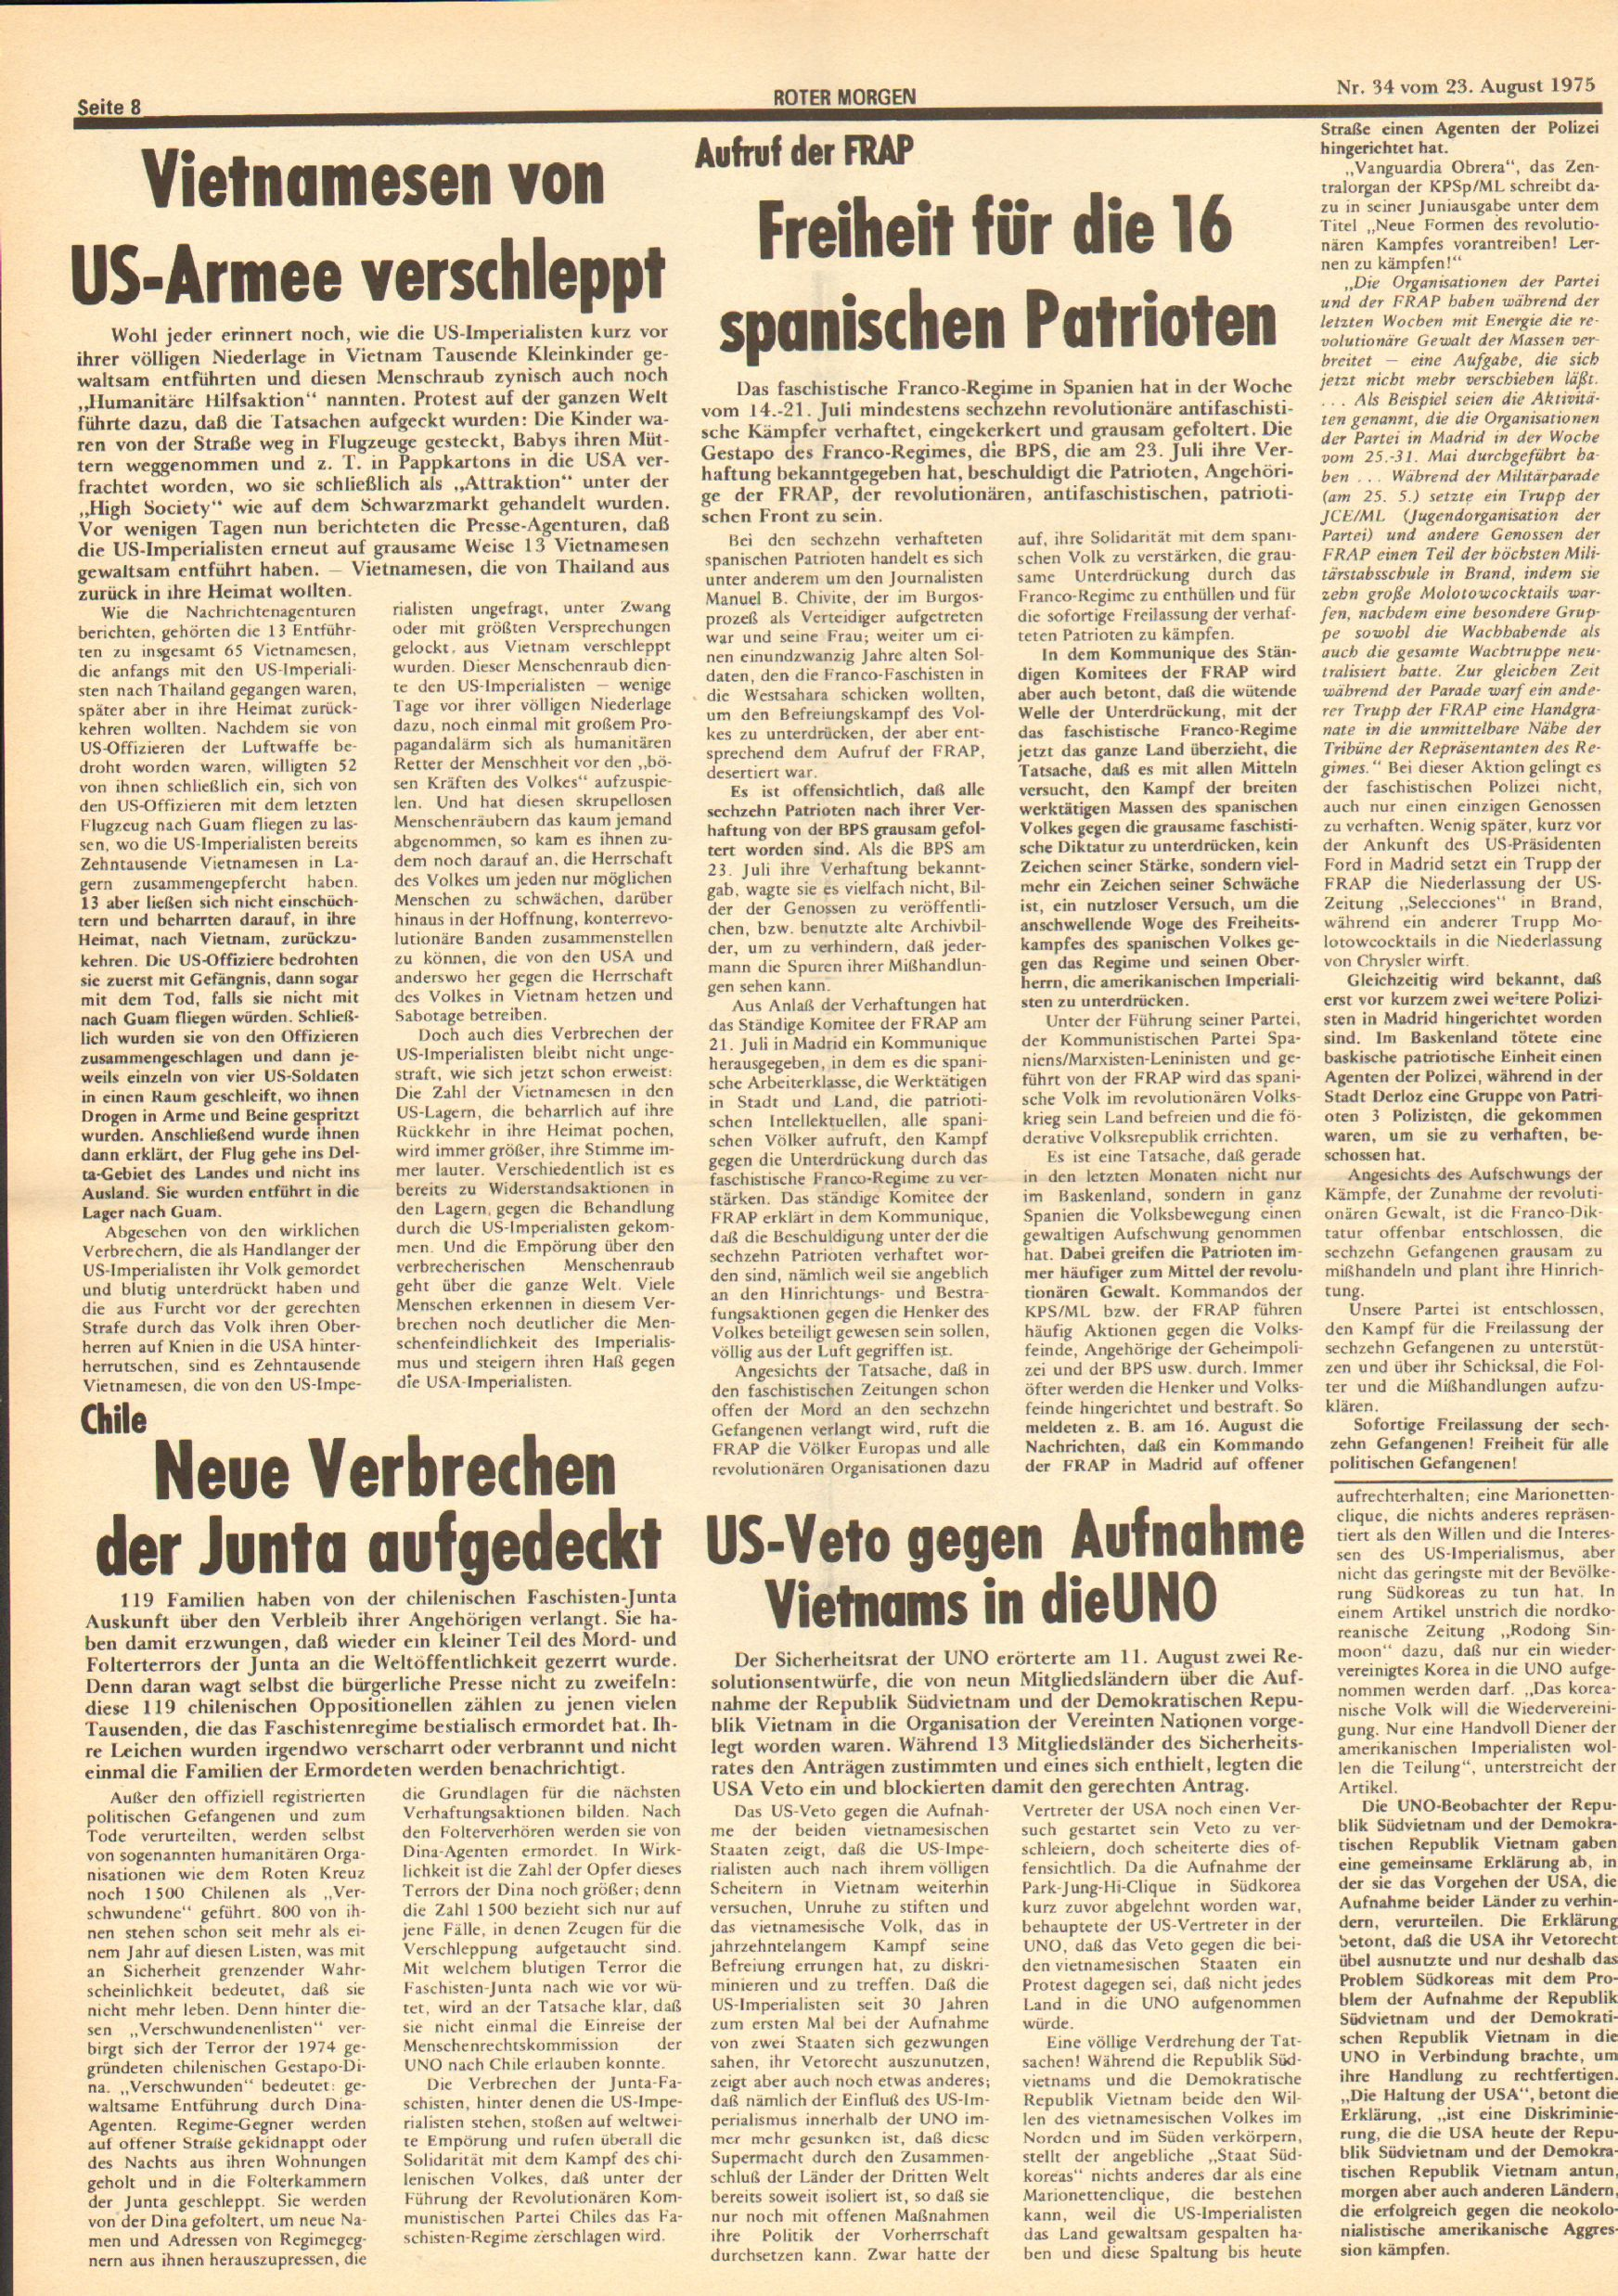 Roter Morgen, 9. Jg., 23. August 1975, Nr. 34, Seite 8